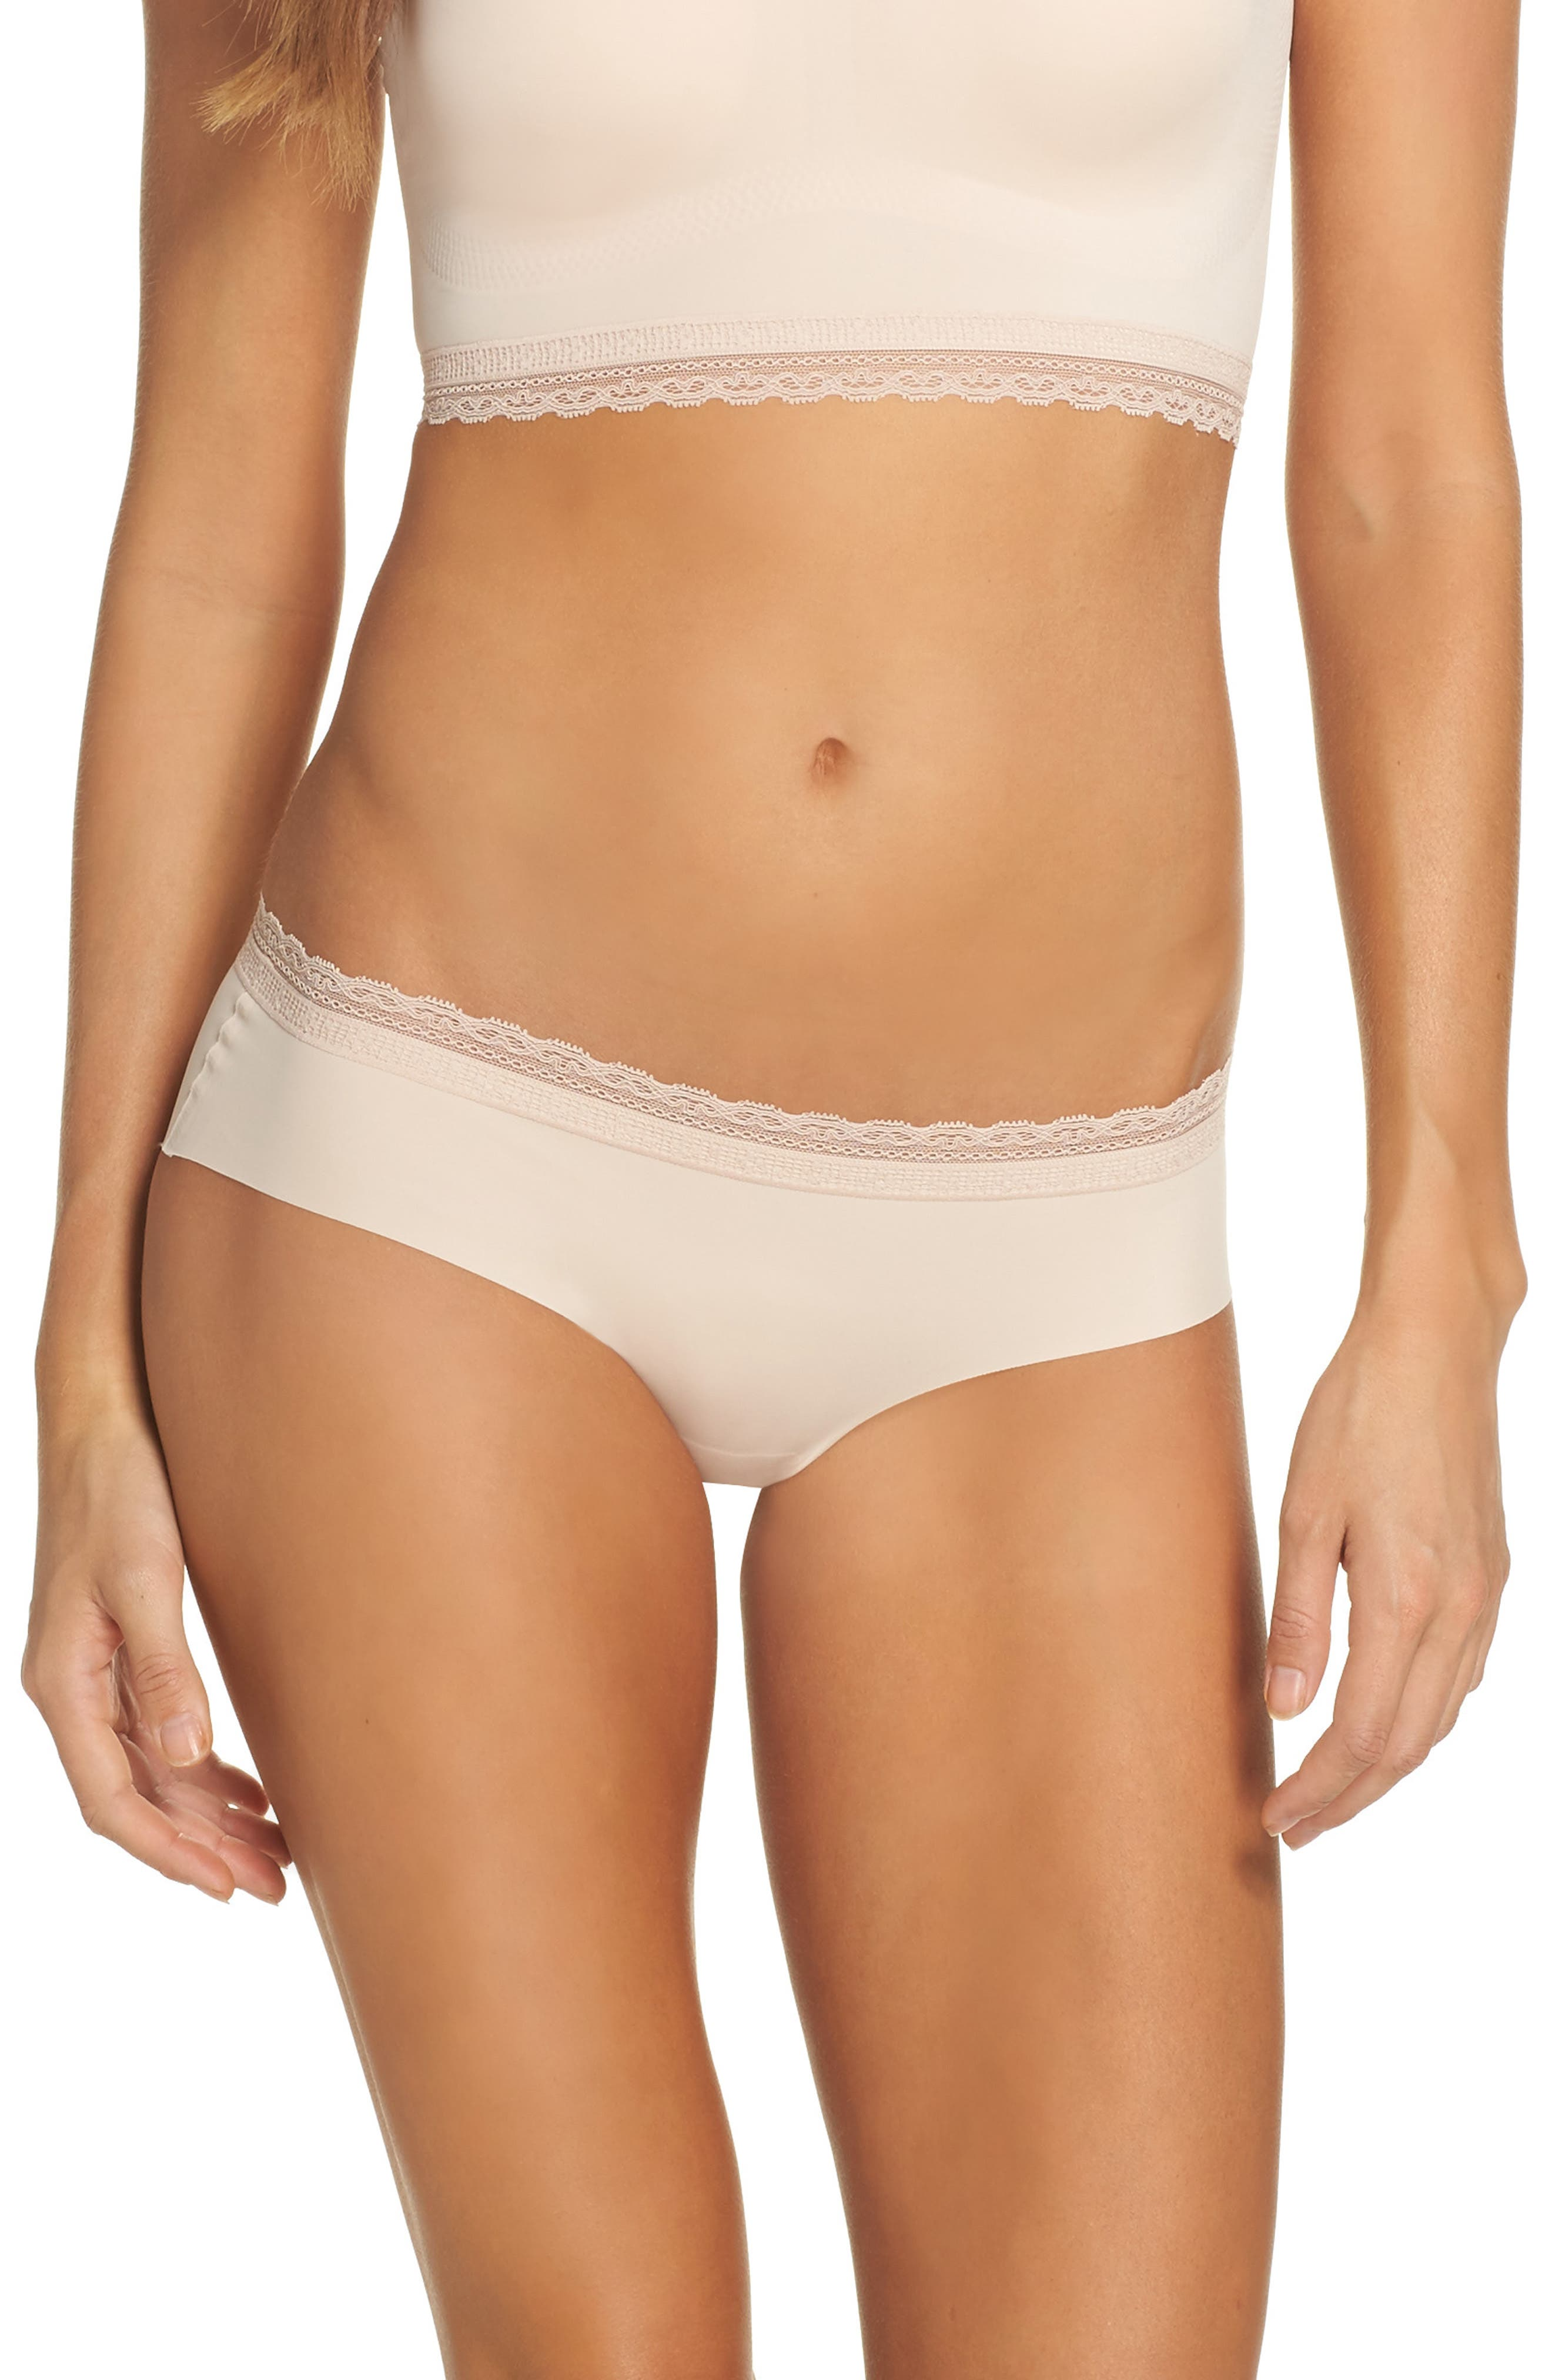 Almost Naked Lace Trim Hipster Briefs,                             Main thumbnail 1, color,                             Rose Dust